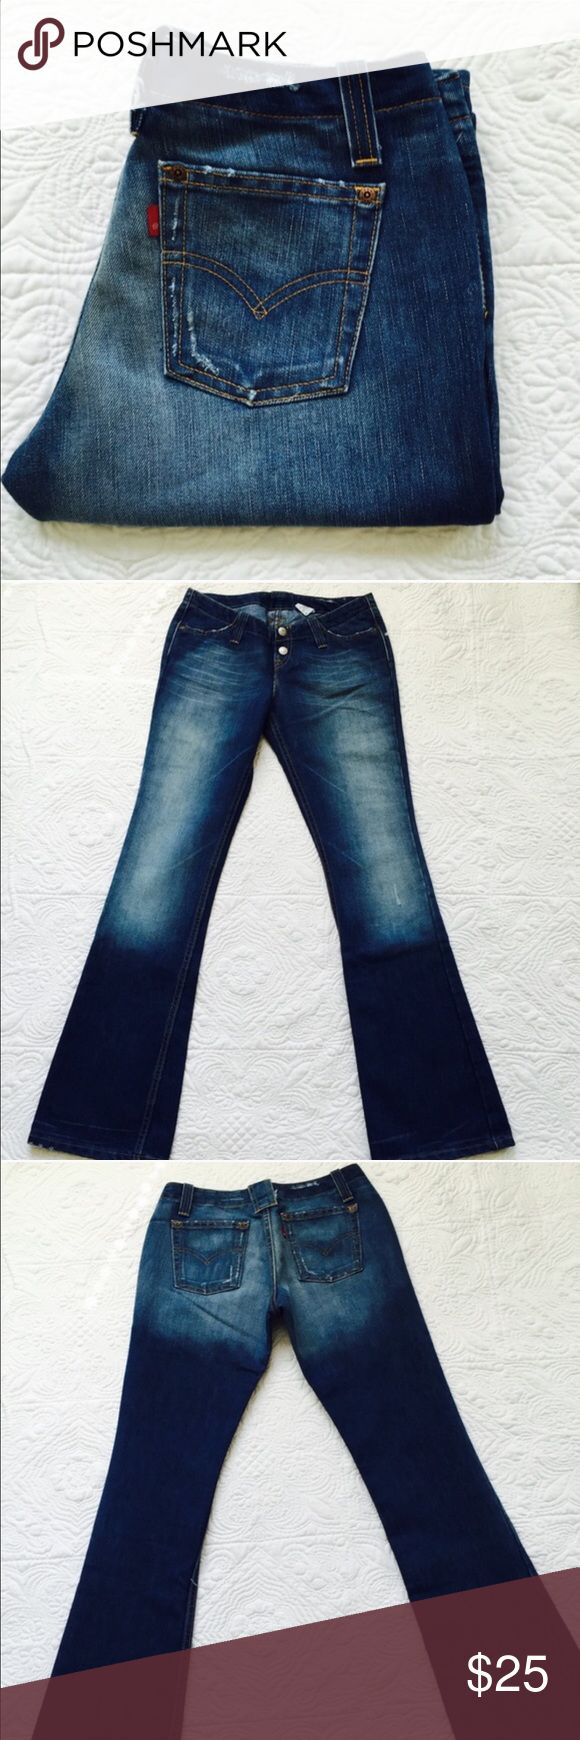 "Levi's 520 jeans New without tag. Rise 7"", inseam 32"", 58% cotton 42% polyester Levi's Jeans Boot Cut"